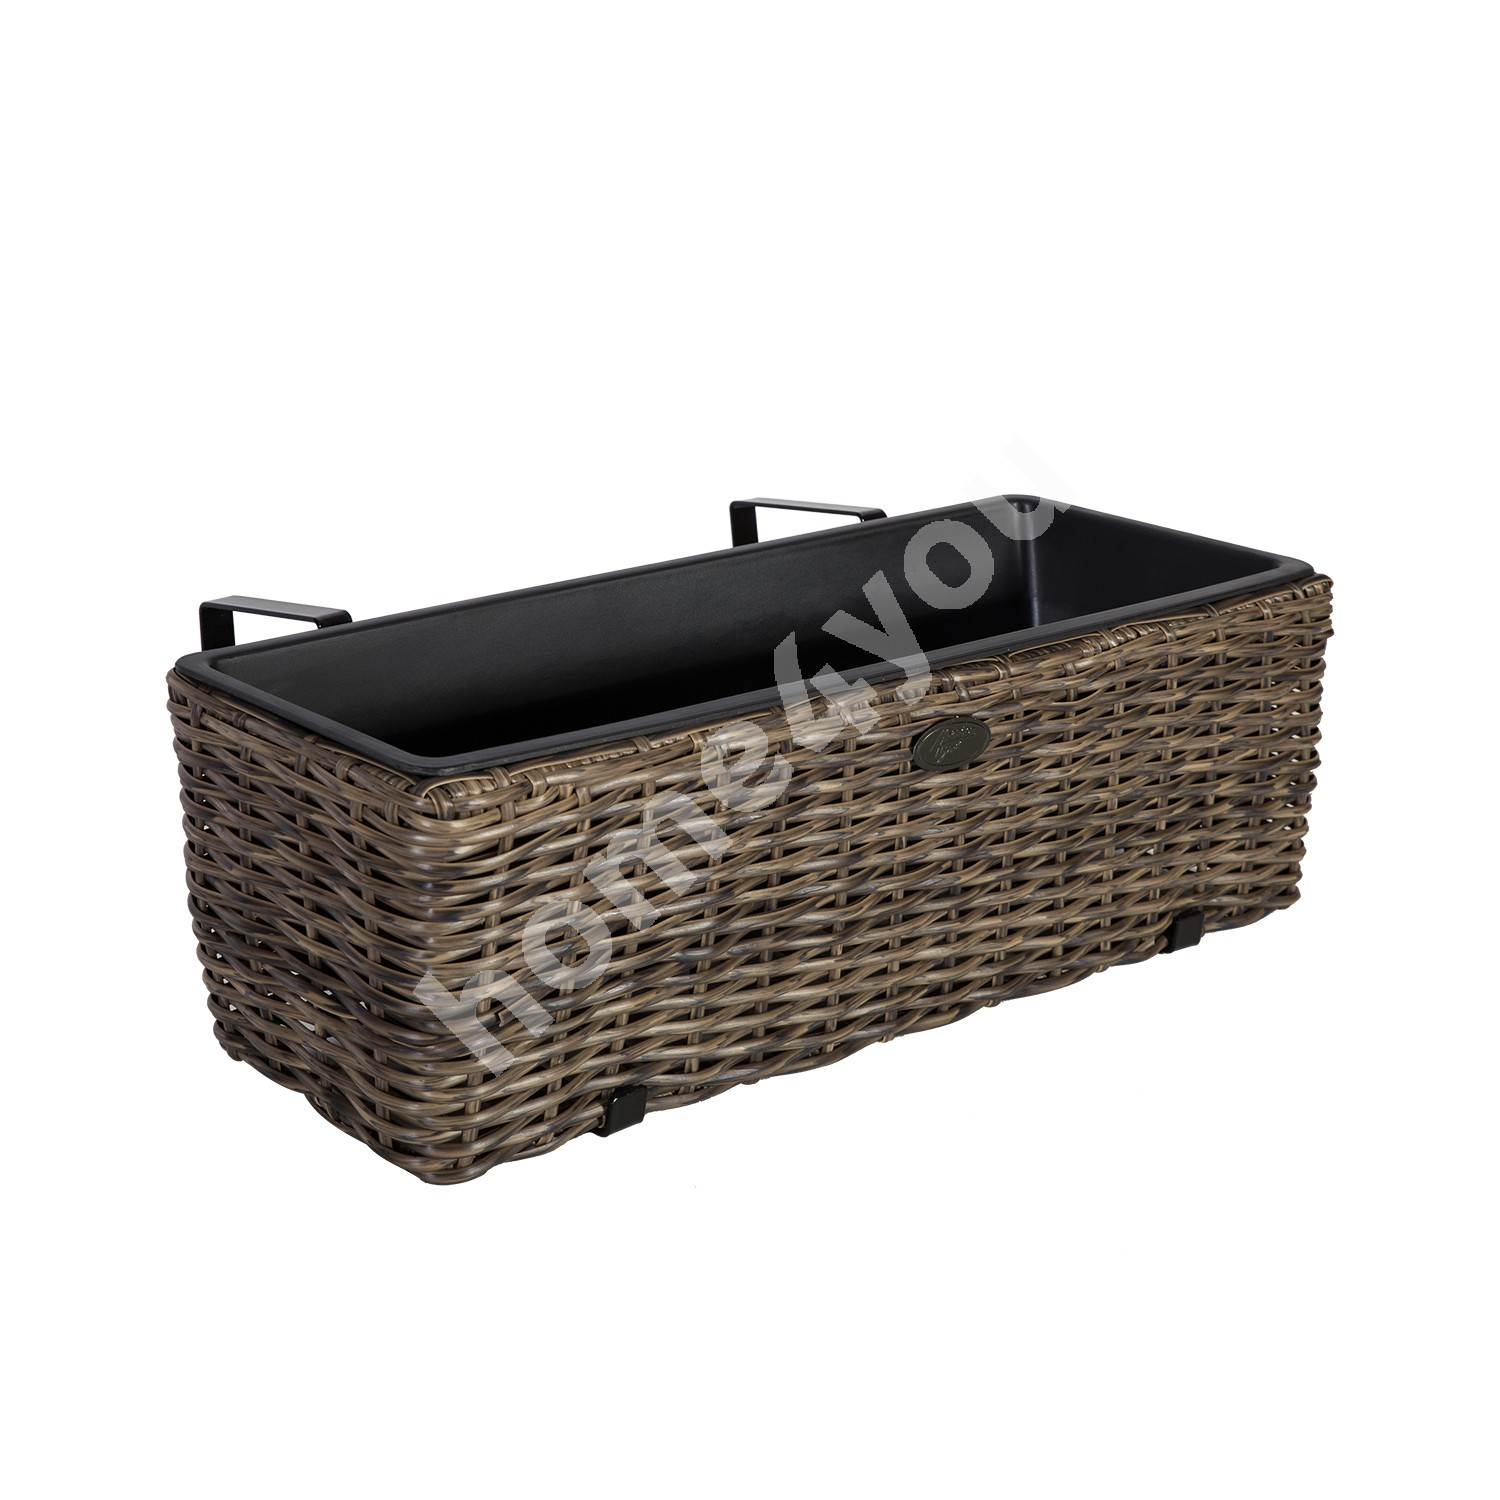 Balcony flower box WICKER 60x19xH18cm, plastic wicker, color: dark brown